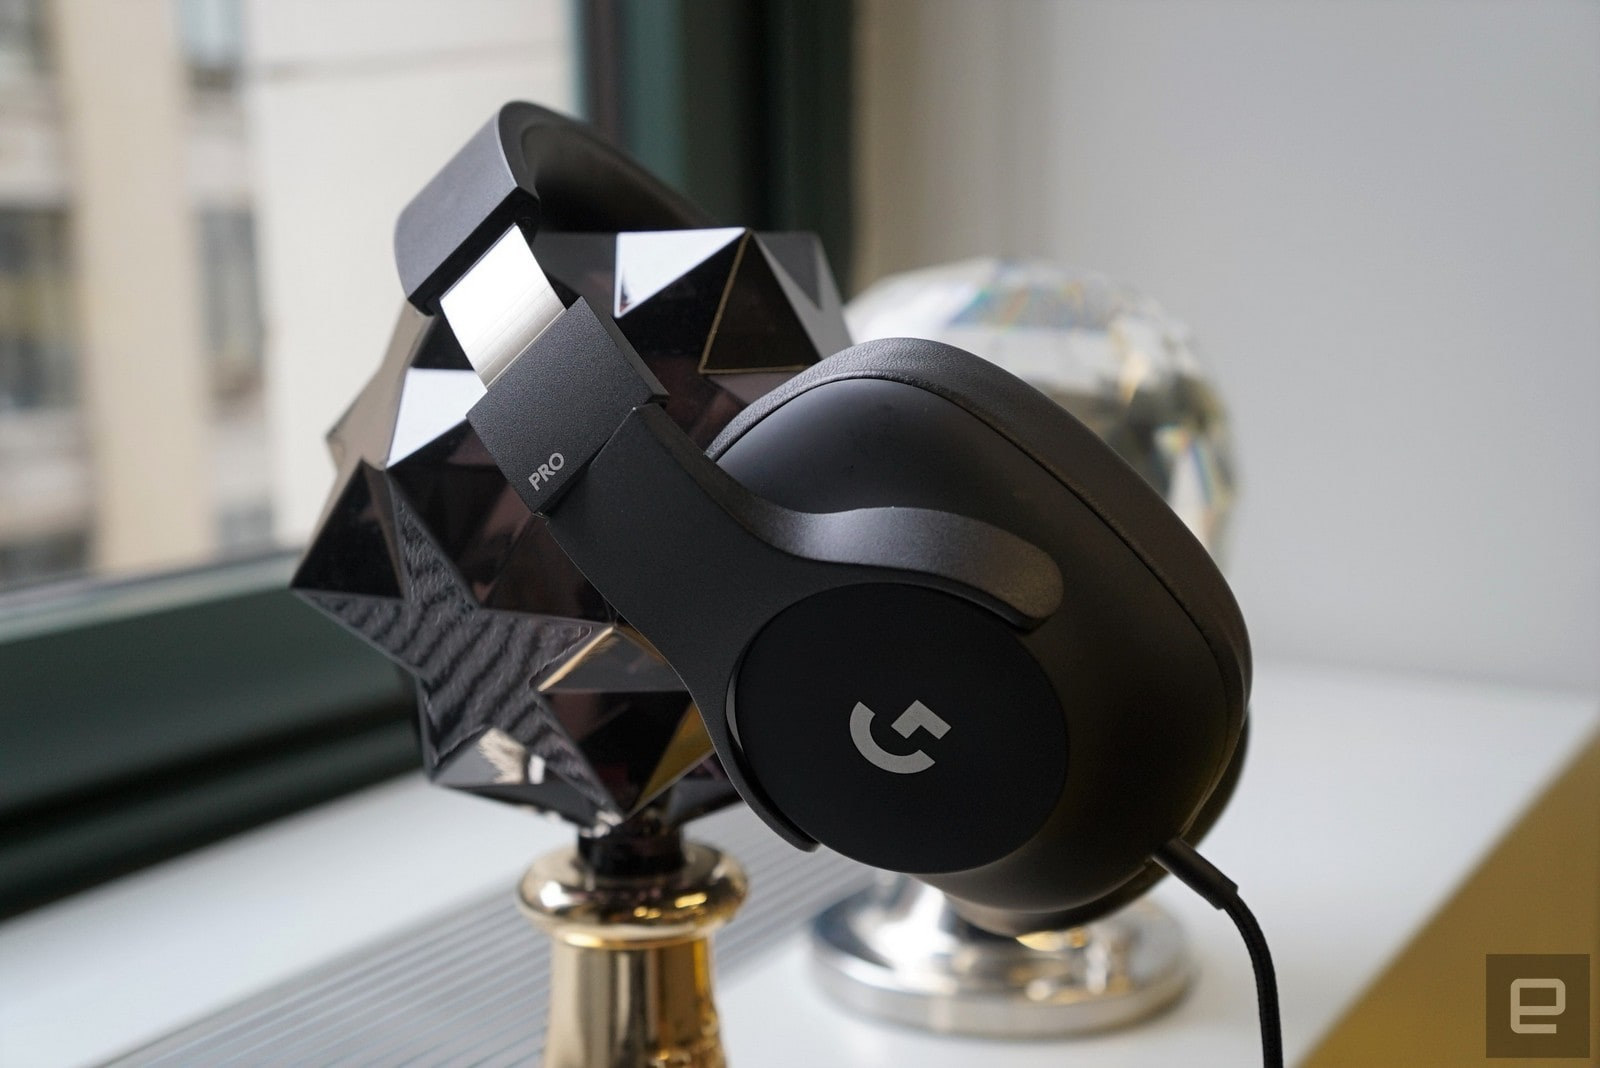 dev/null: Logitech's G Pro headset is built for eSports